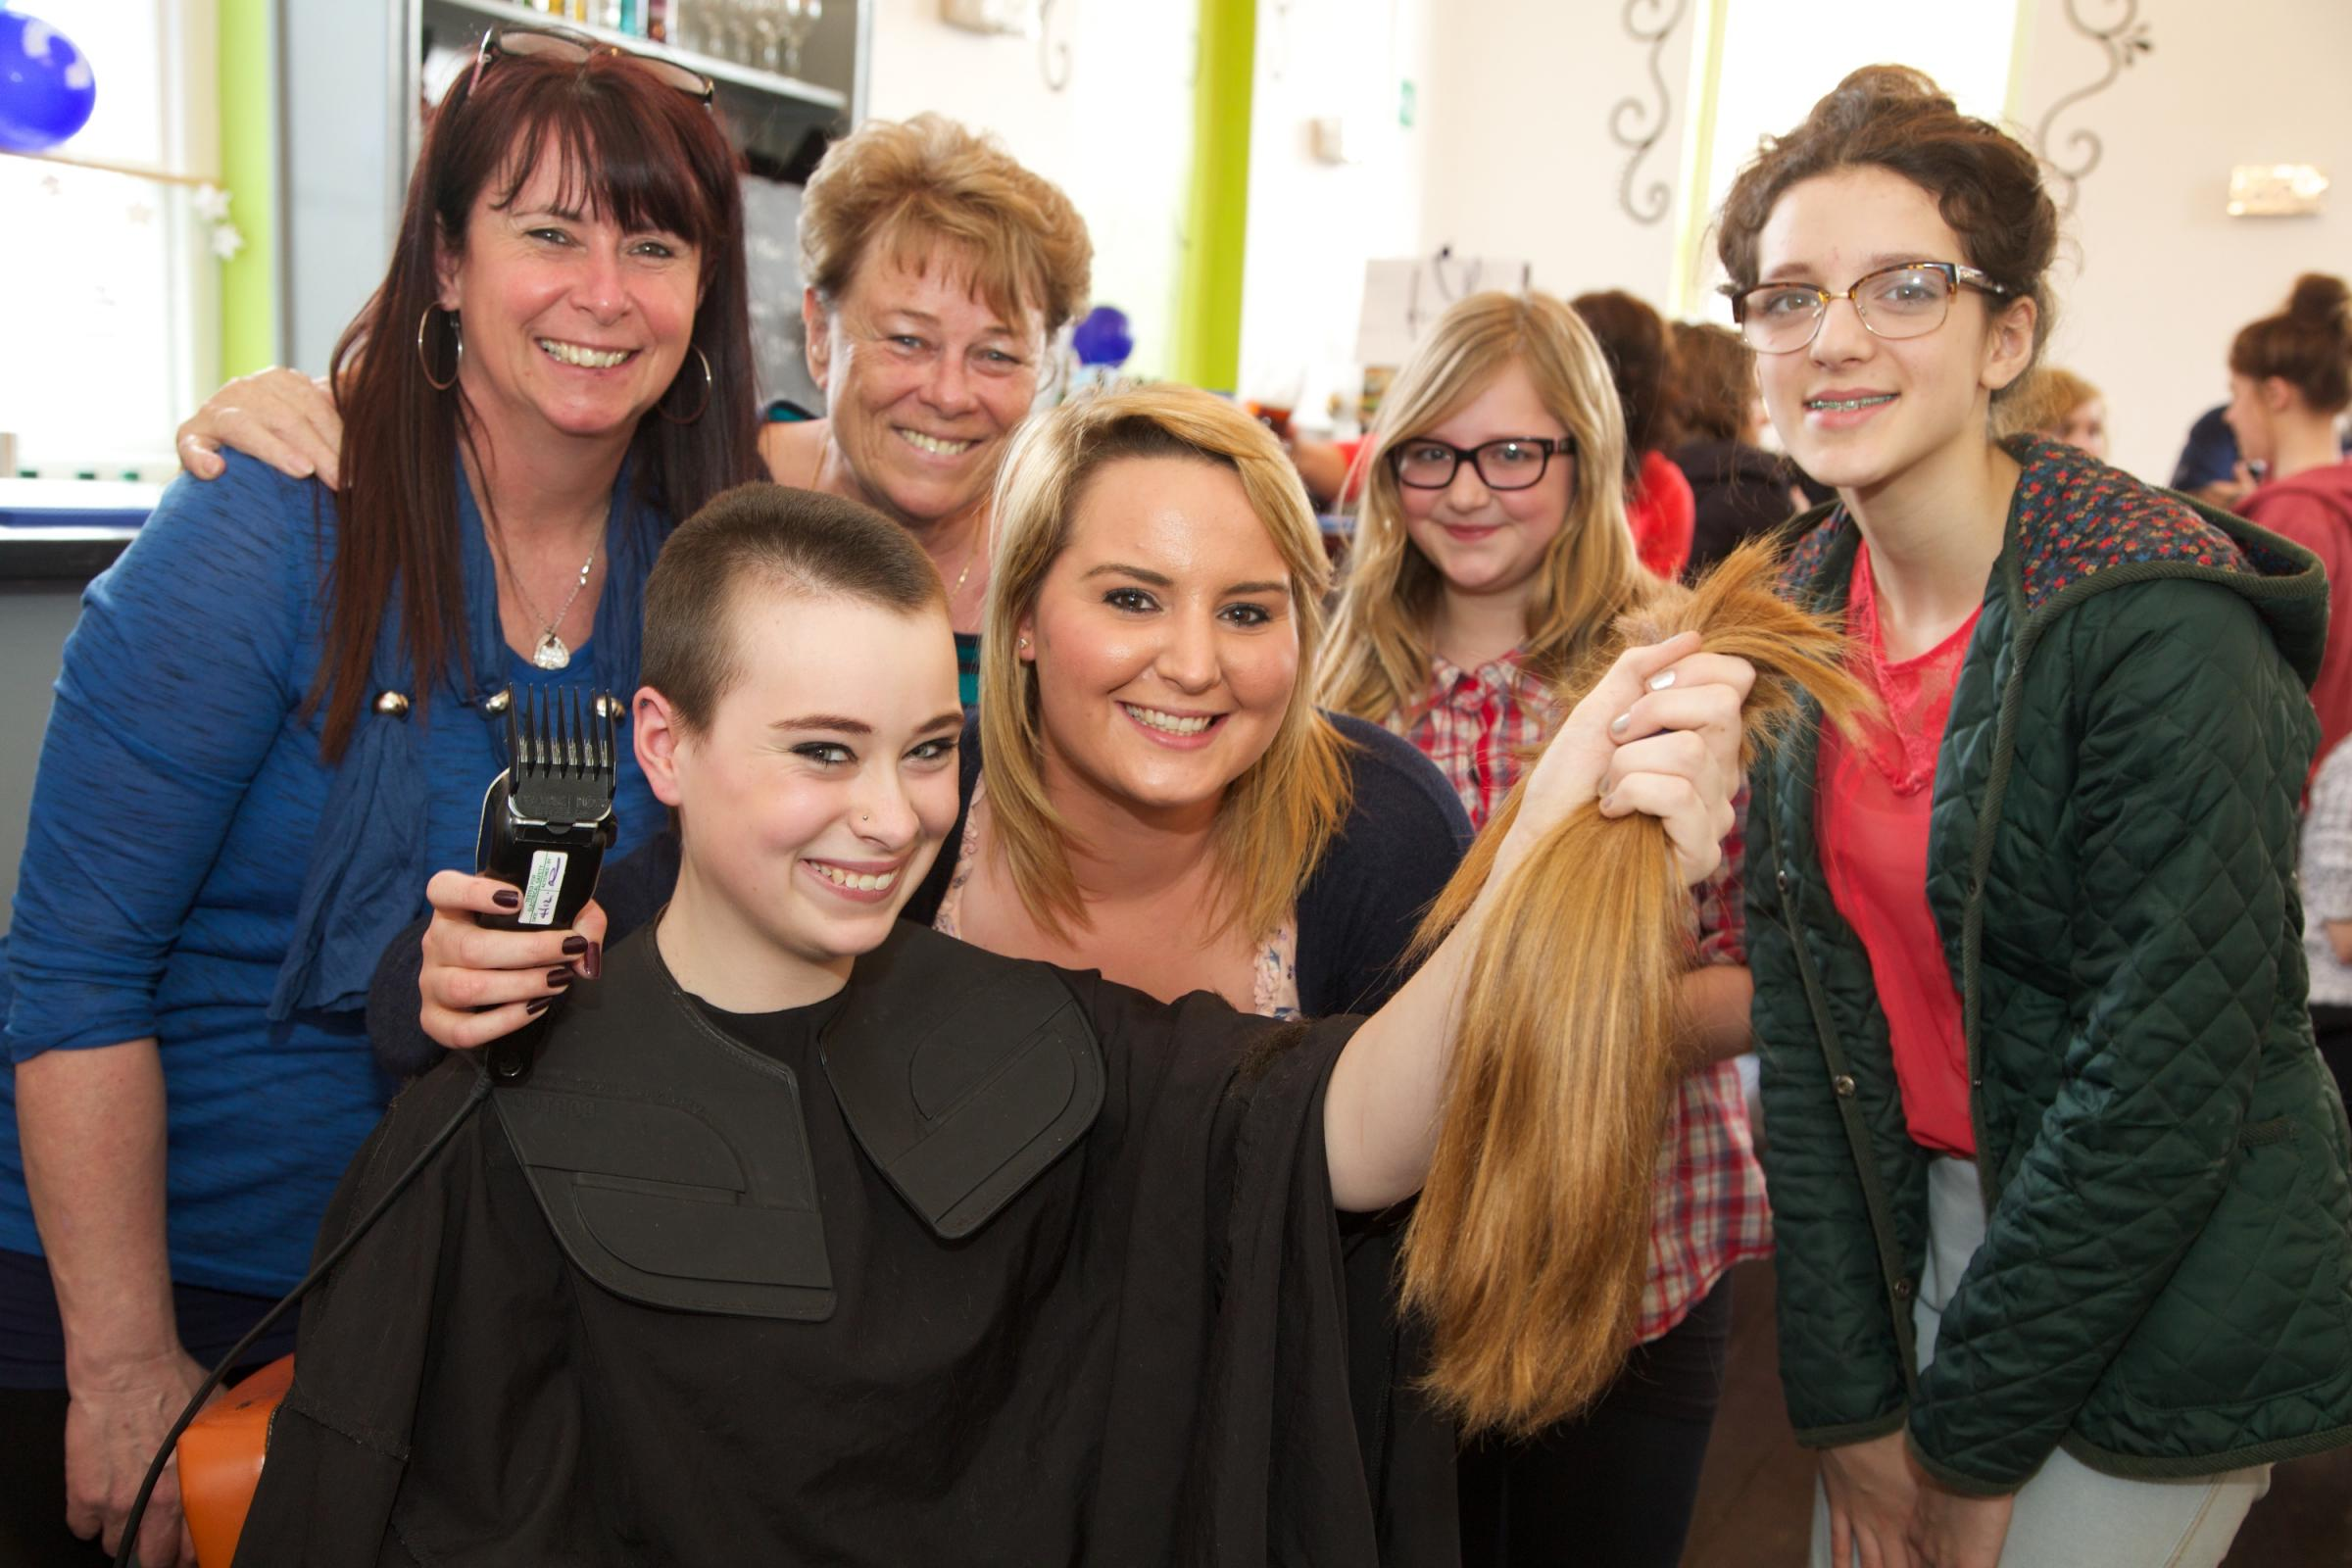 Toni-Jay Brocklesby with hairdresser Jemma Hunter and supporters